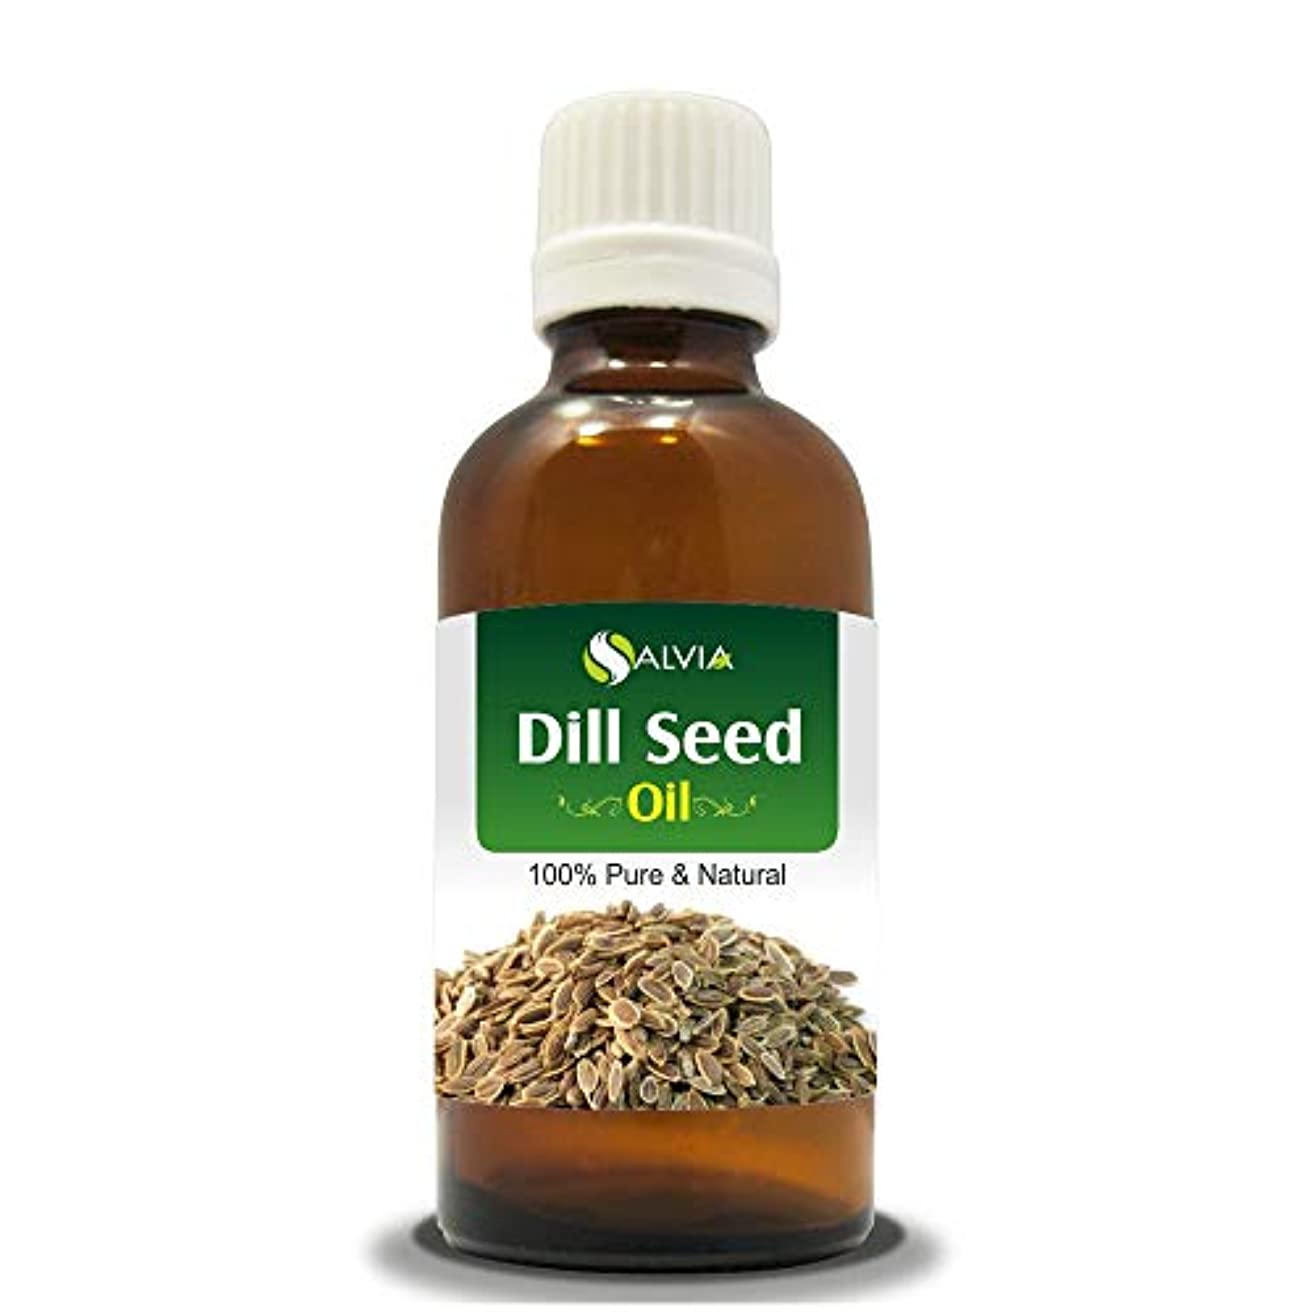 煩わしい巻き戻す独裁者DILL SEED OIL 100% NATURAL PURE UNDILUTED UNCUT ESSENTIAL OIL 15ML